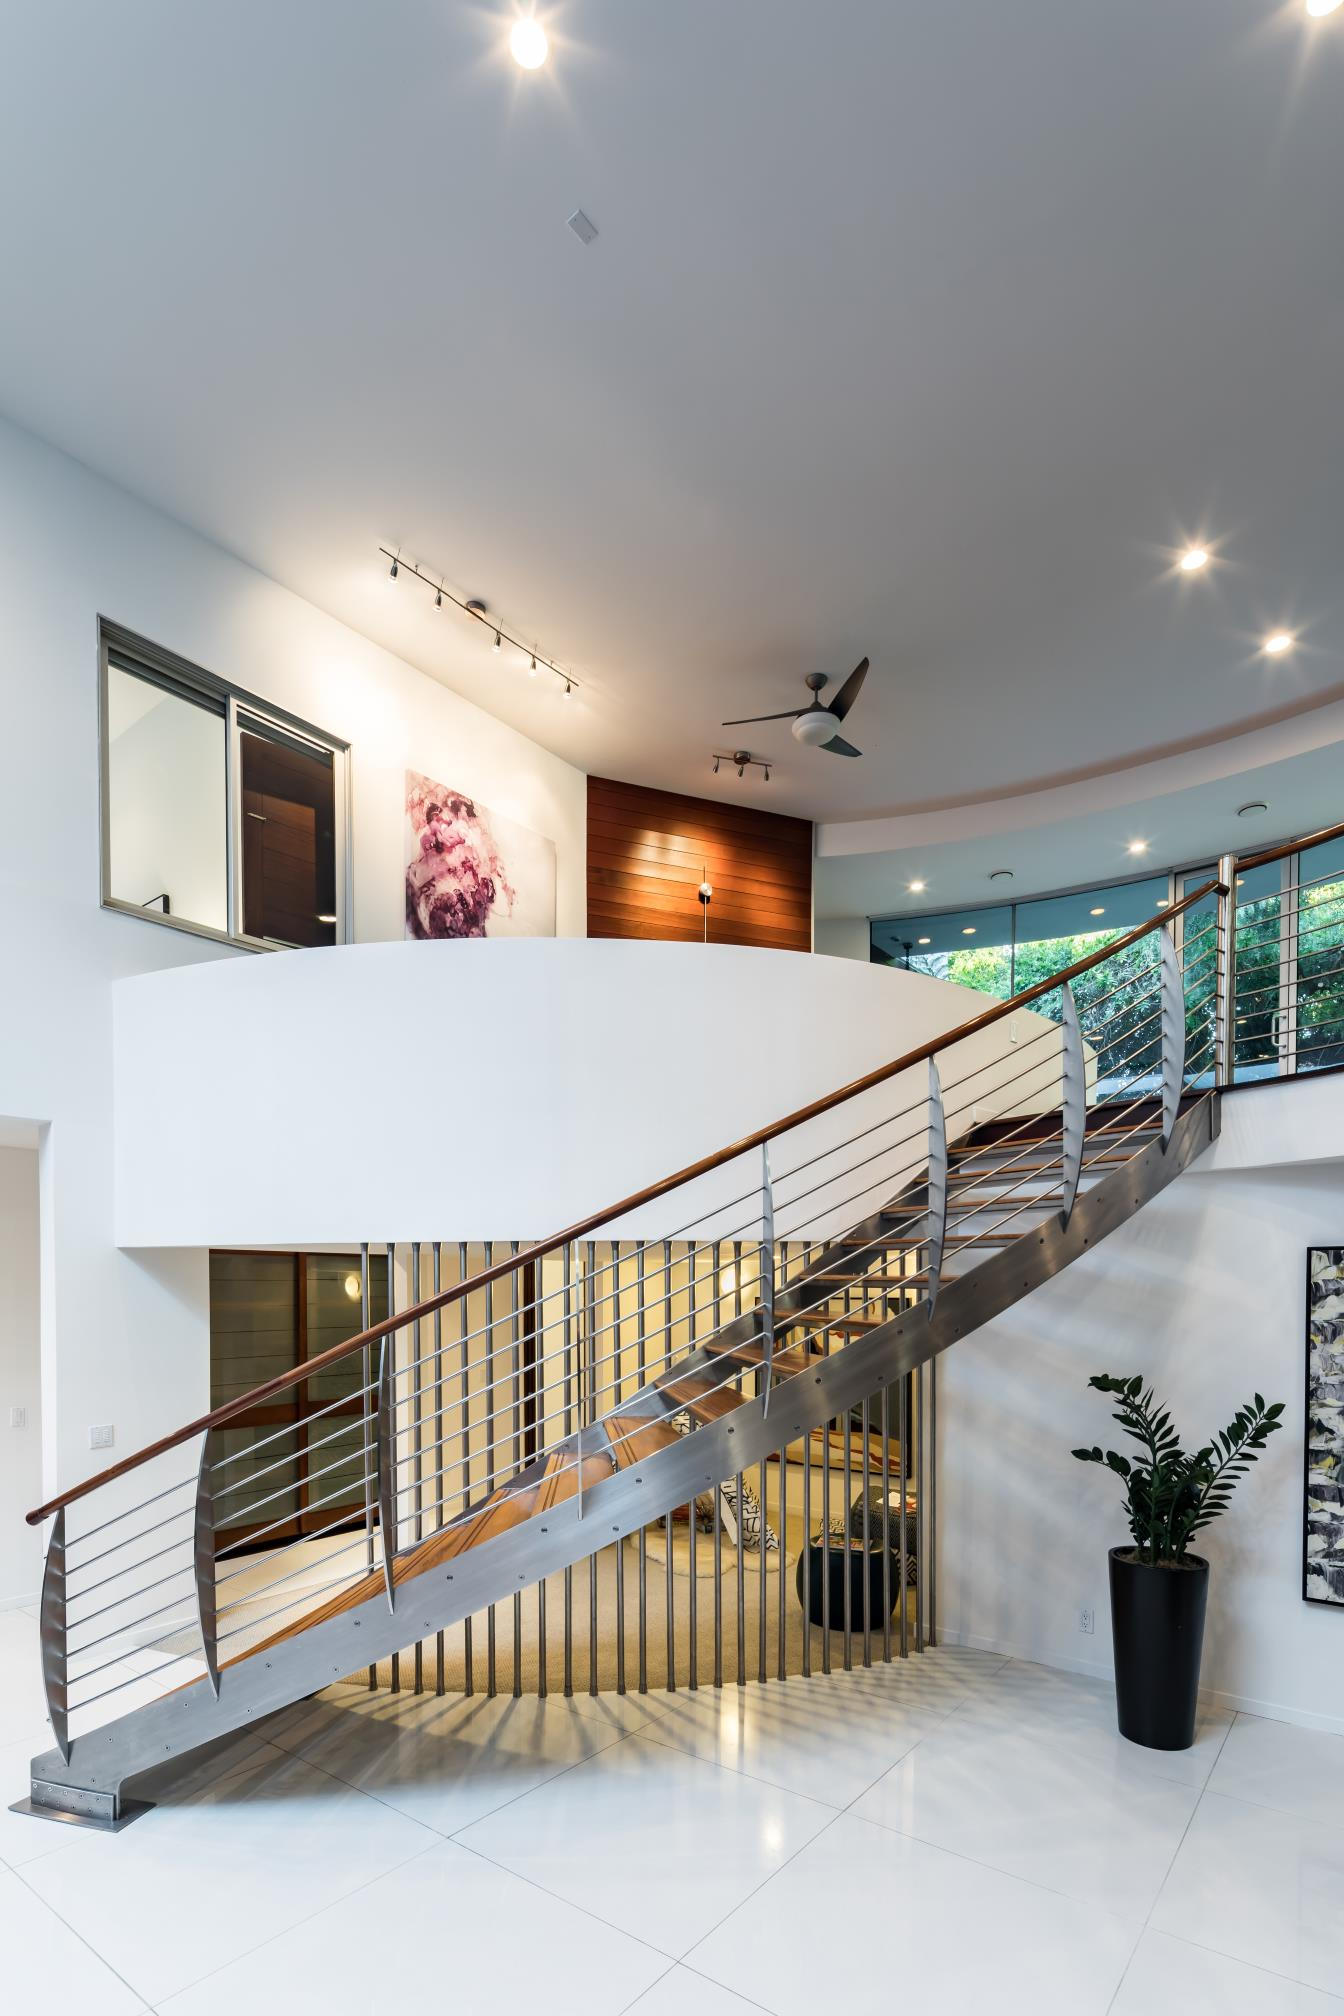 Stairs, interior design, architect work, Los Altos